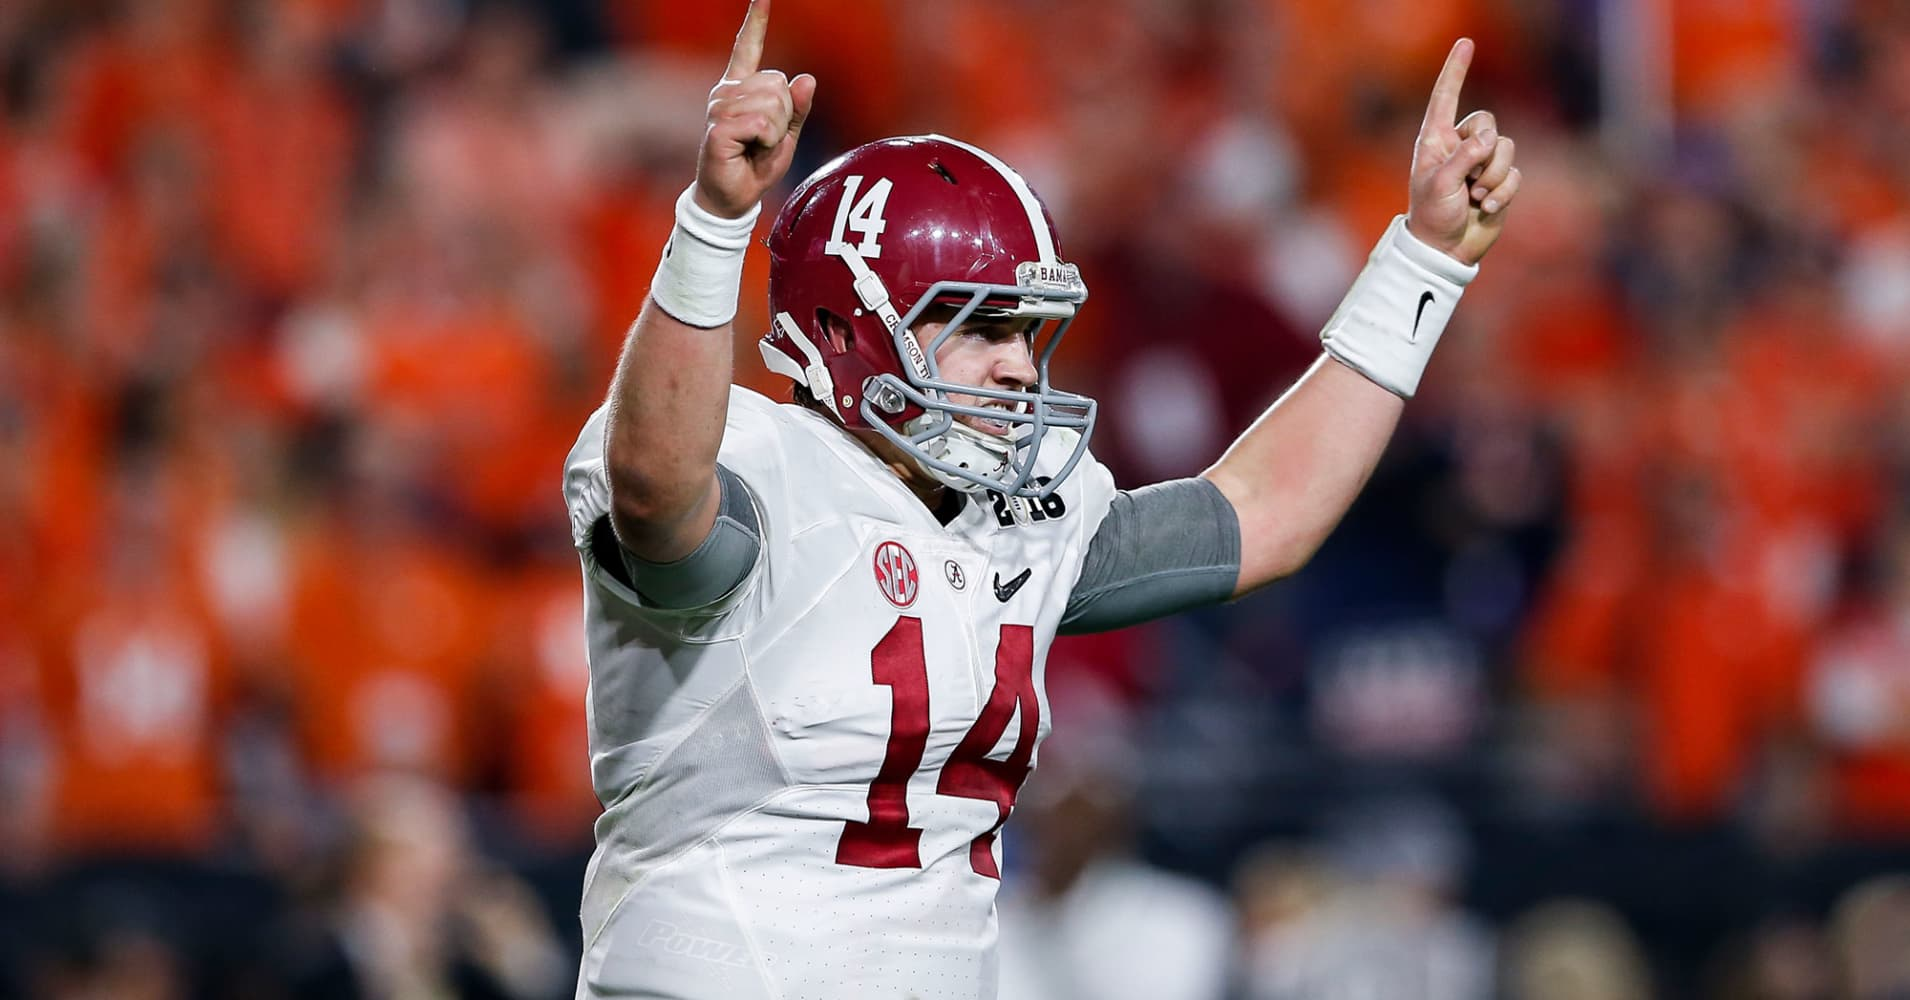 Quarterback Jake Coker of the Alabama Crimson Tide after scoring a touchdown during the College Football National Championship Game against the Clemson Tigers at University of Phoenix Stadium on January 11, 2016 in Glendale, Arizona.